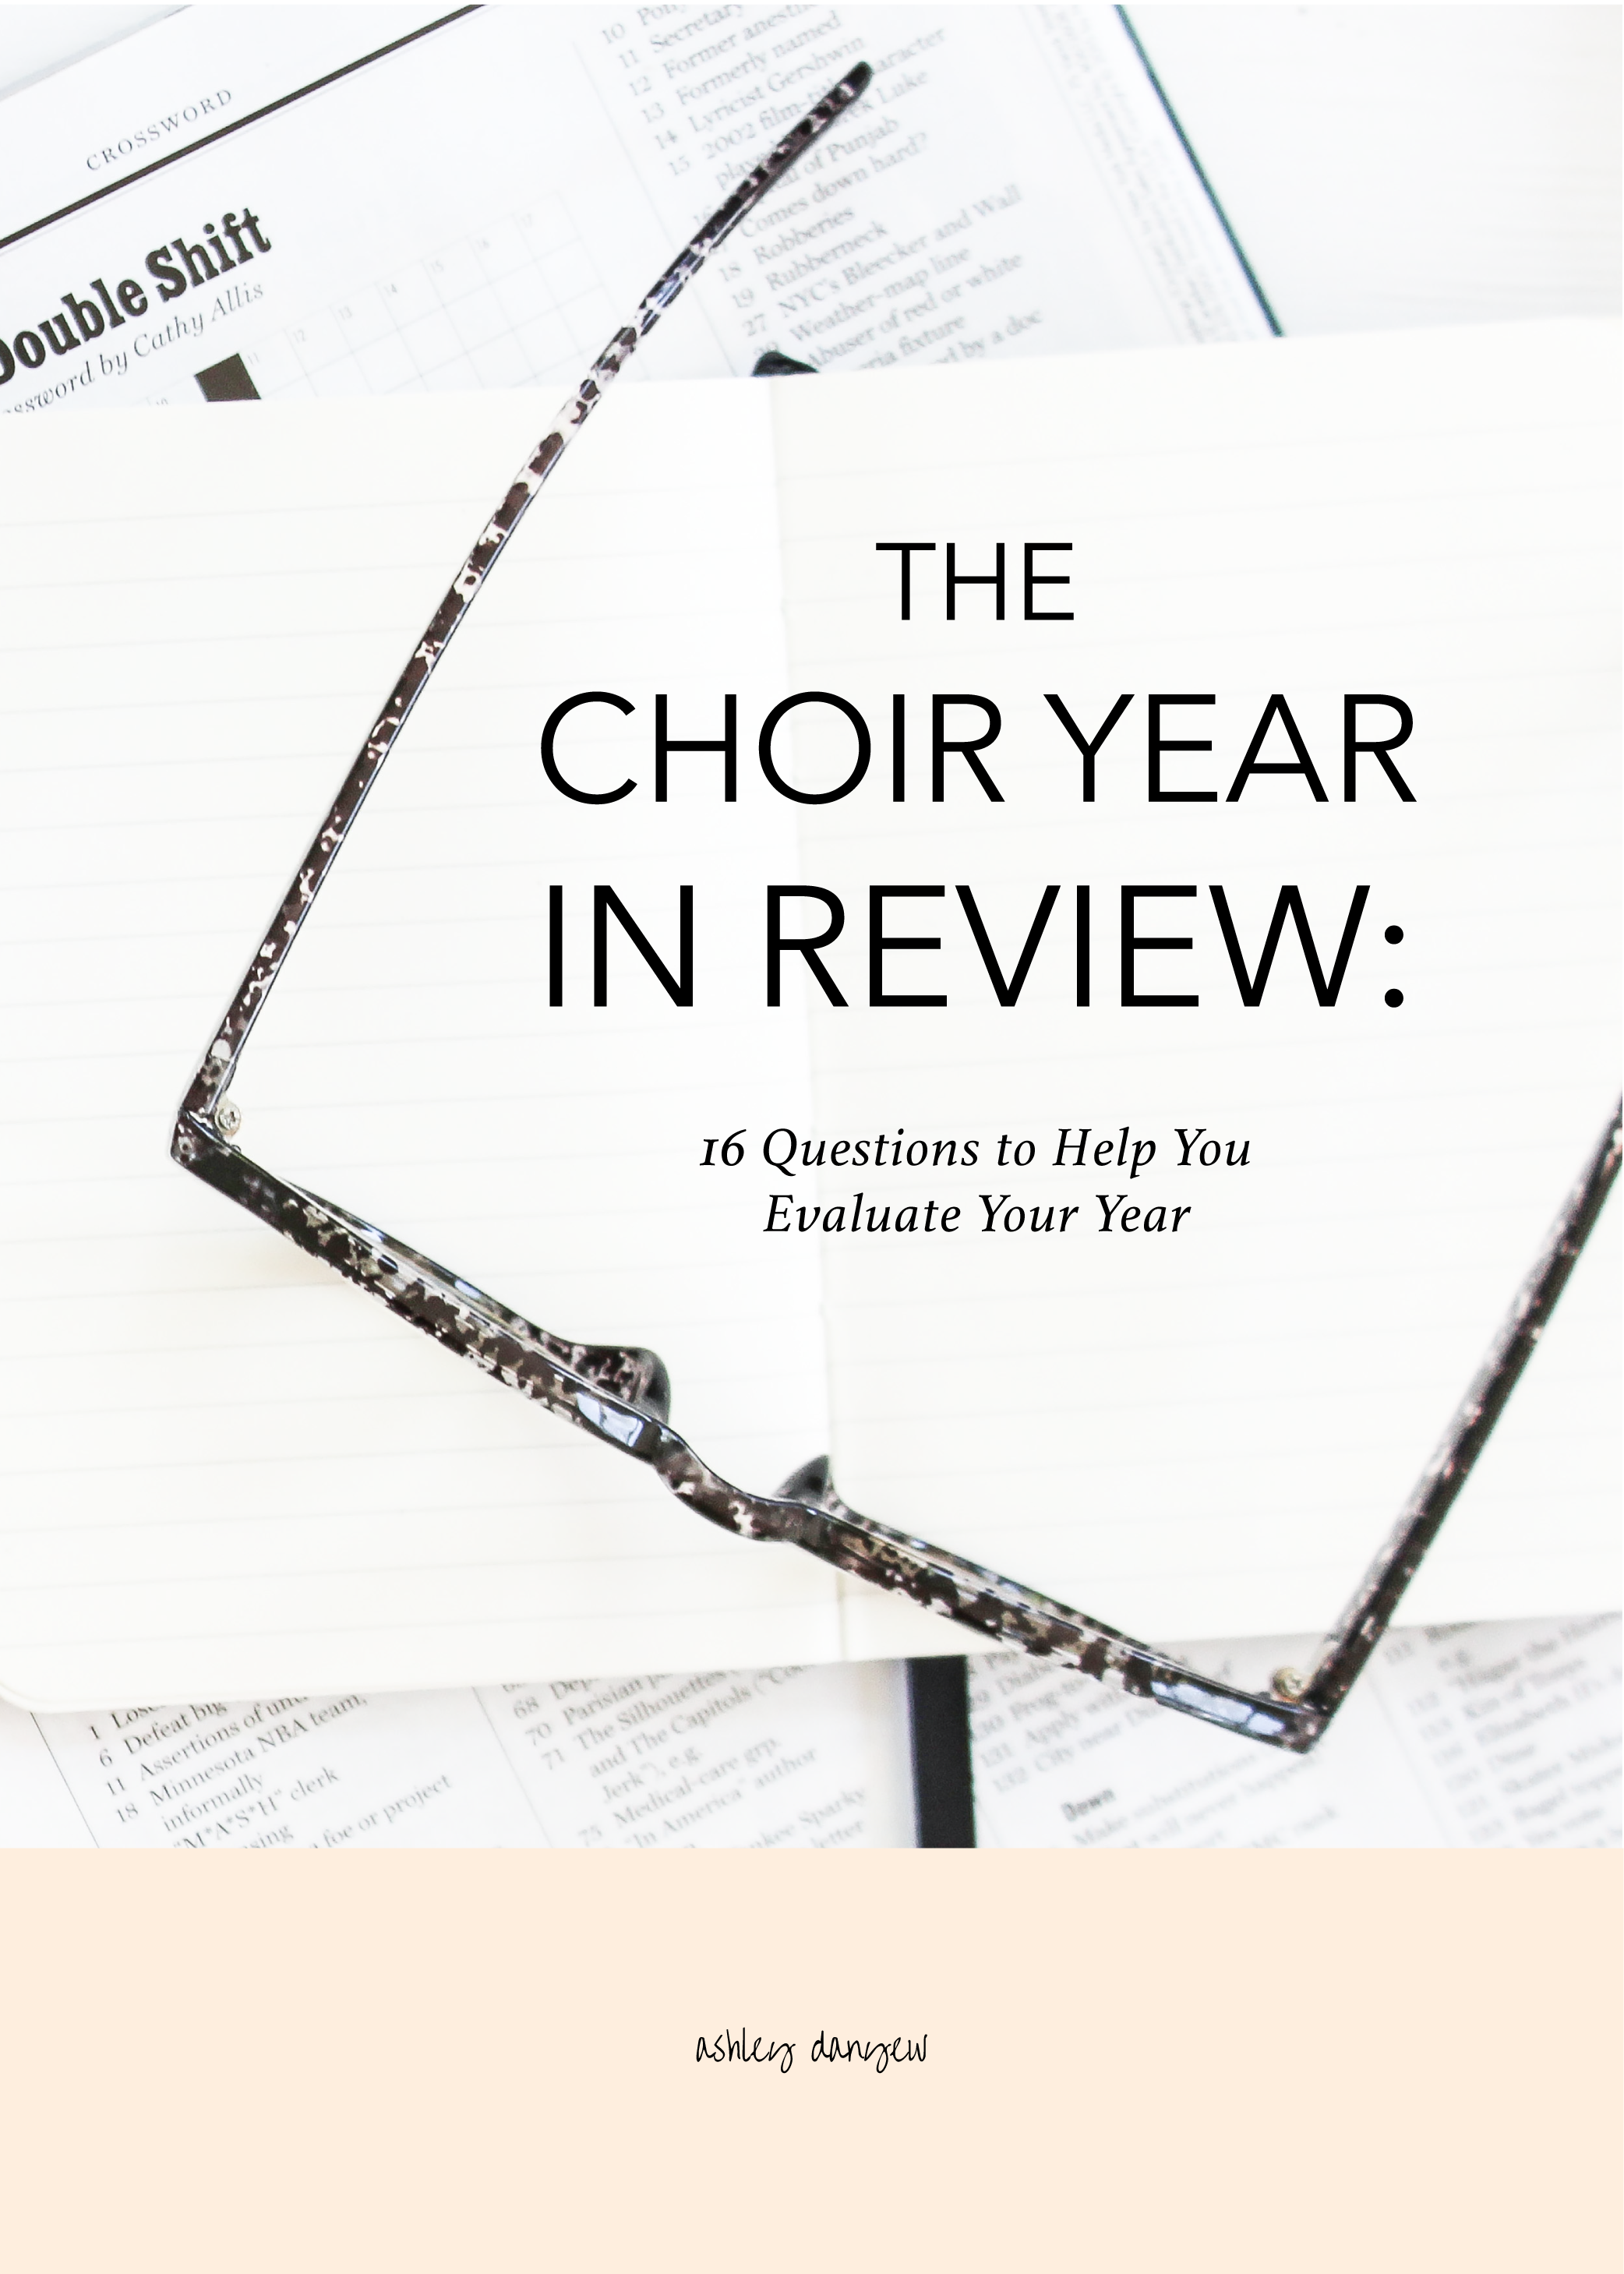 The Choir Year in Review - 16 Questions to Help You Evaluate Your Year-30.png